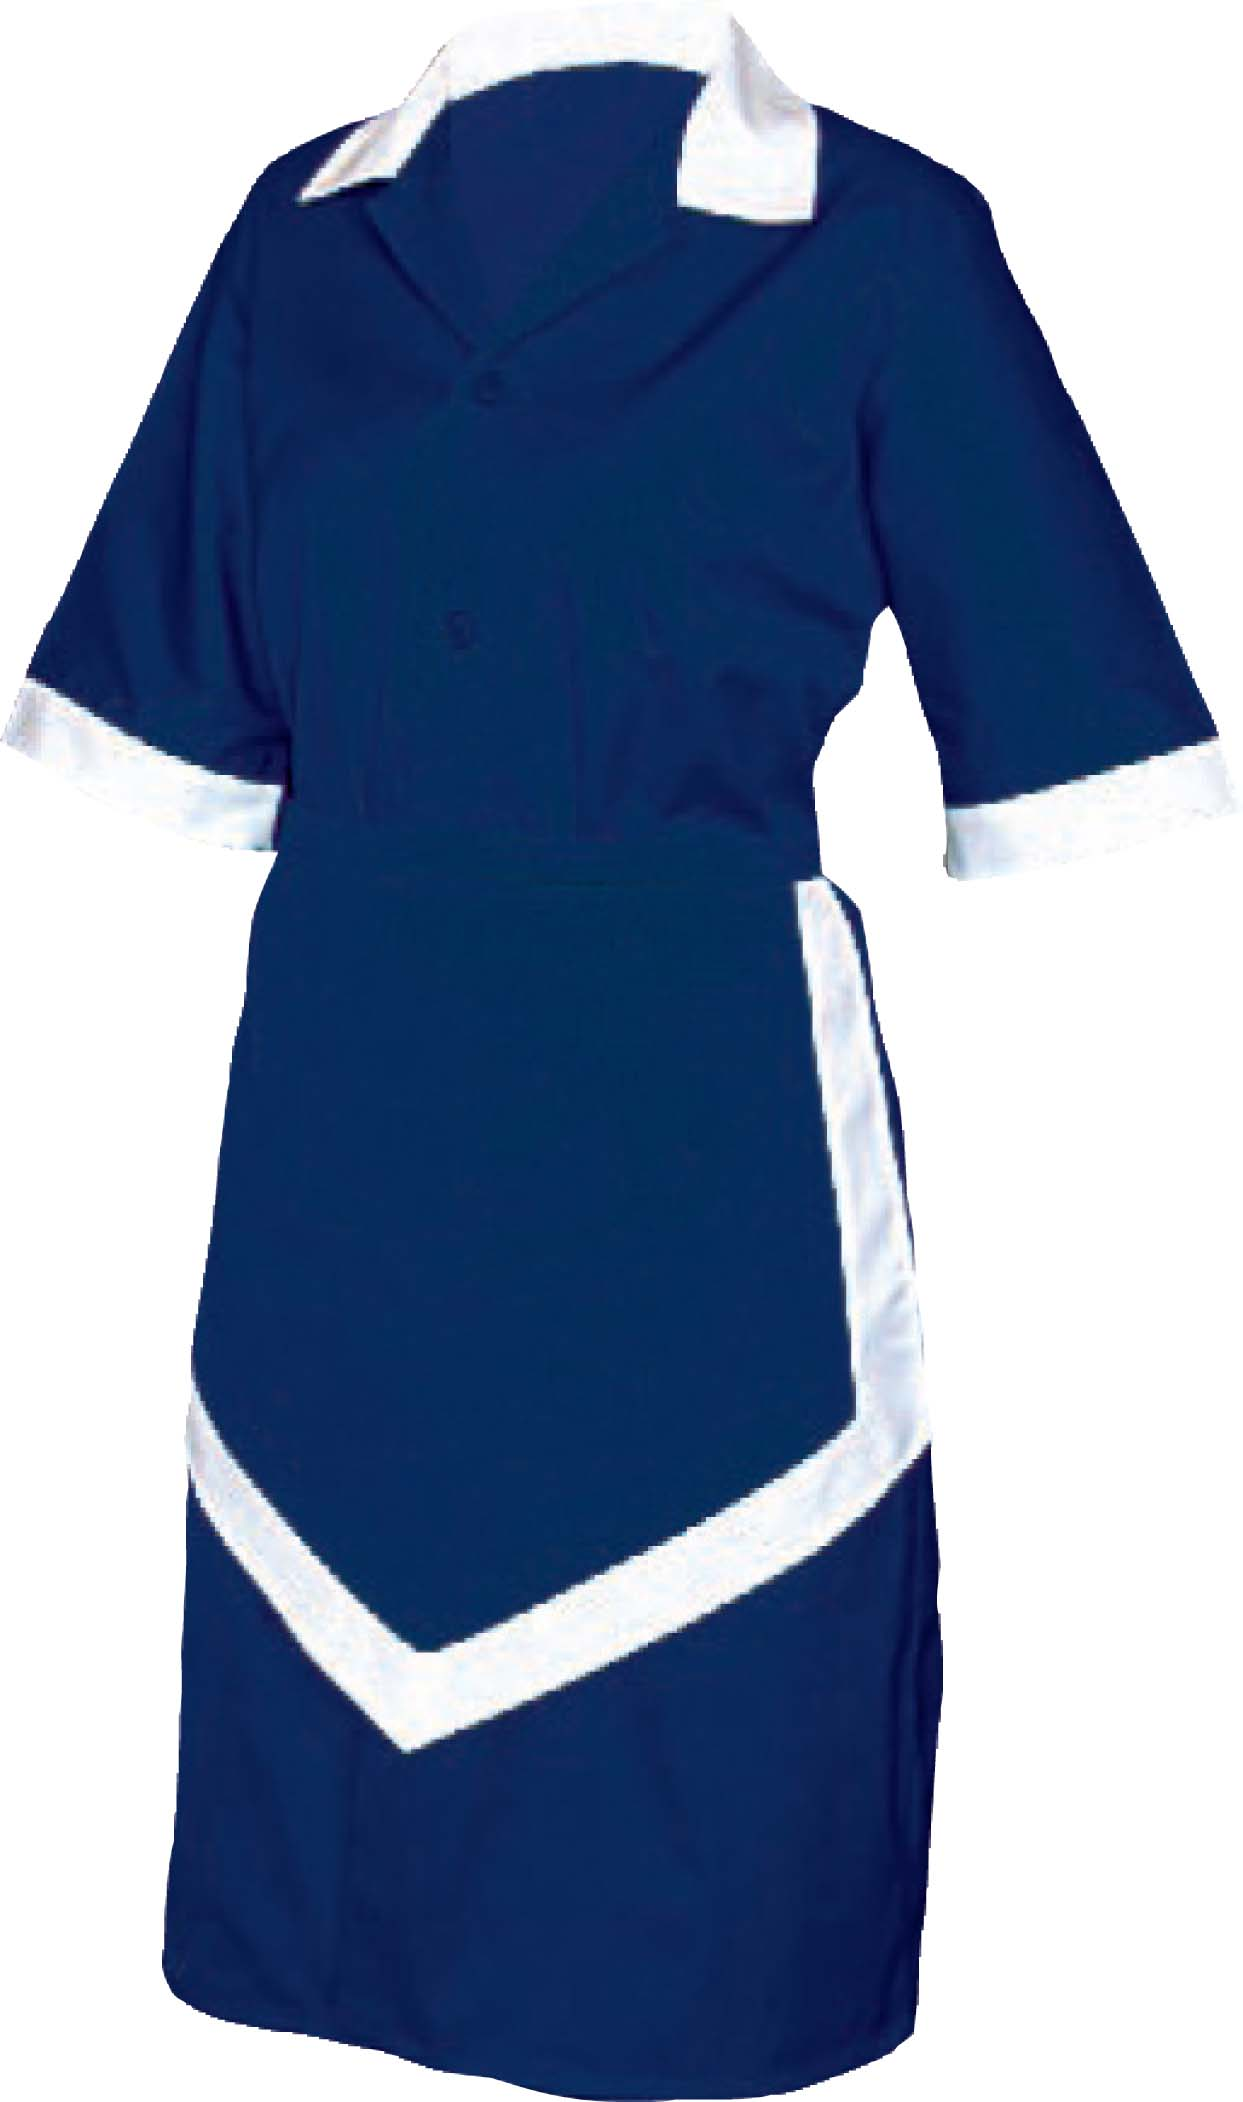 LADIES HOUSEKEEPING 3PC - NAVY AND WHITELarge UNI5033